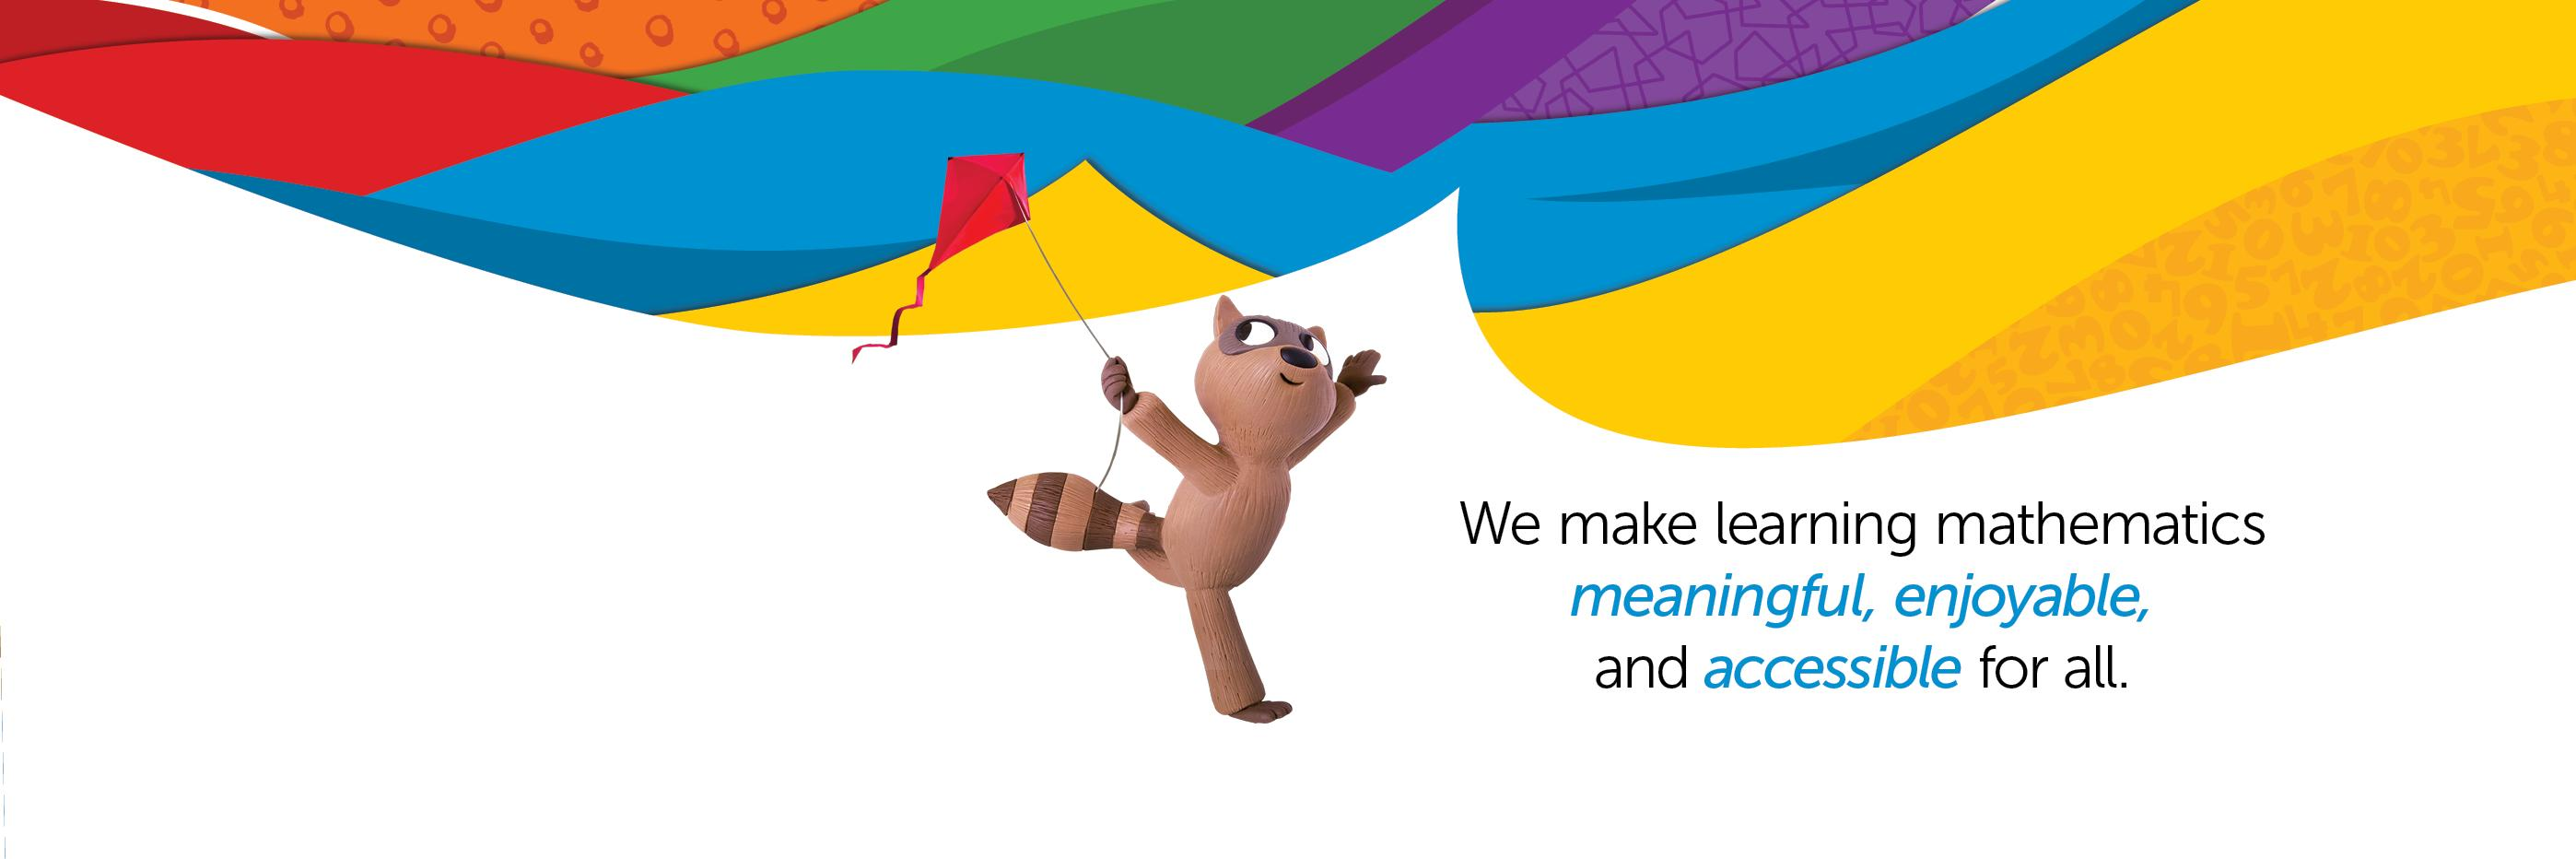 We're all in this together! ORIGO is proud to supply free mathematics activities to support learning from home. O… https://t.co/xfjVpWEN5g